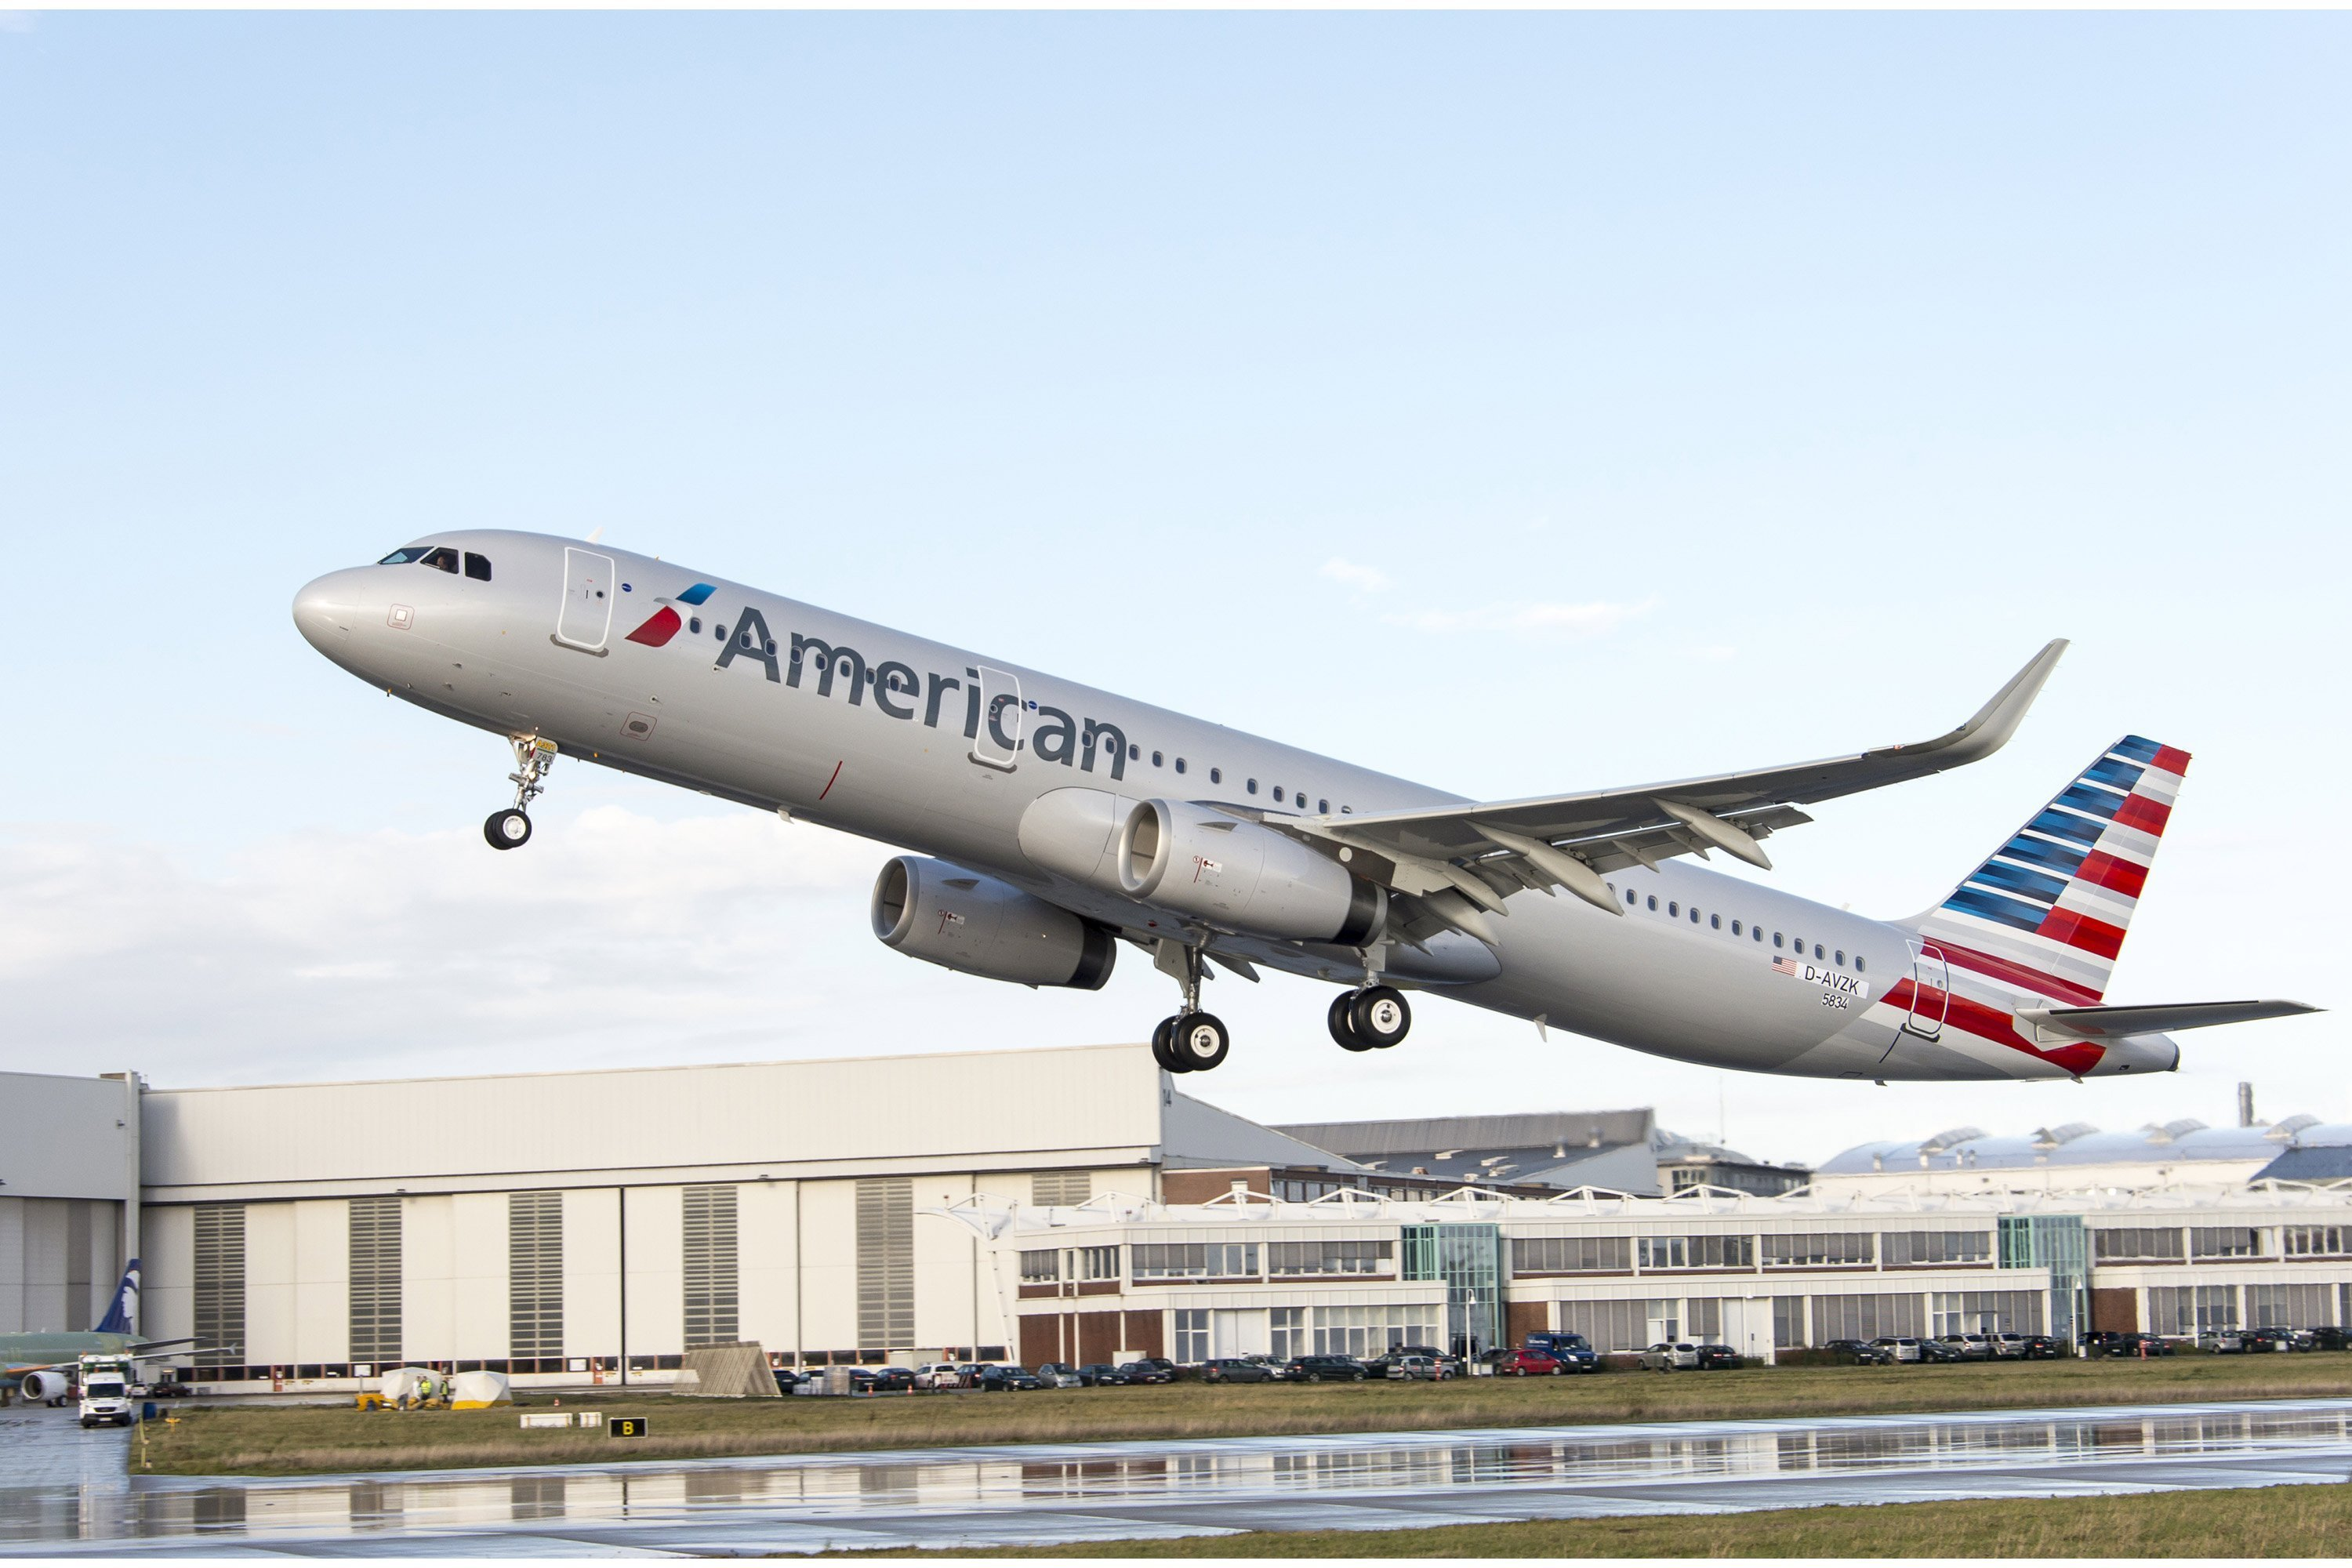 Monthly Up Snap: American Airlines Group Inc. (AAL) stock performed 9.51%